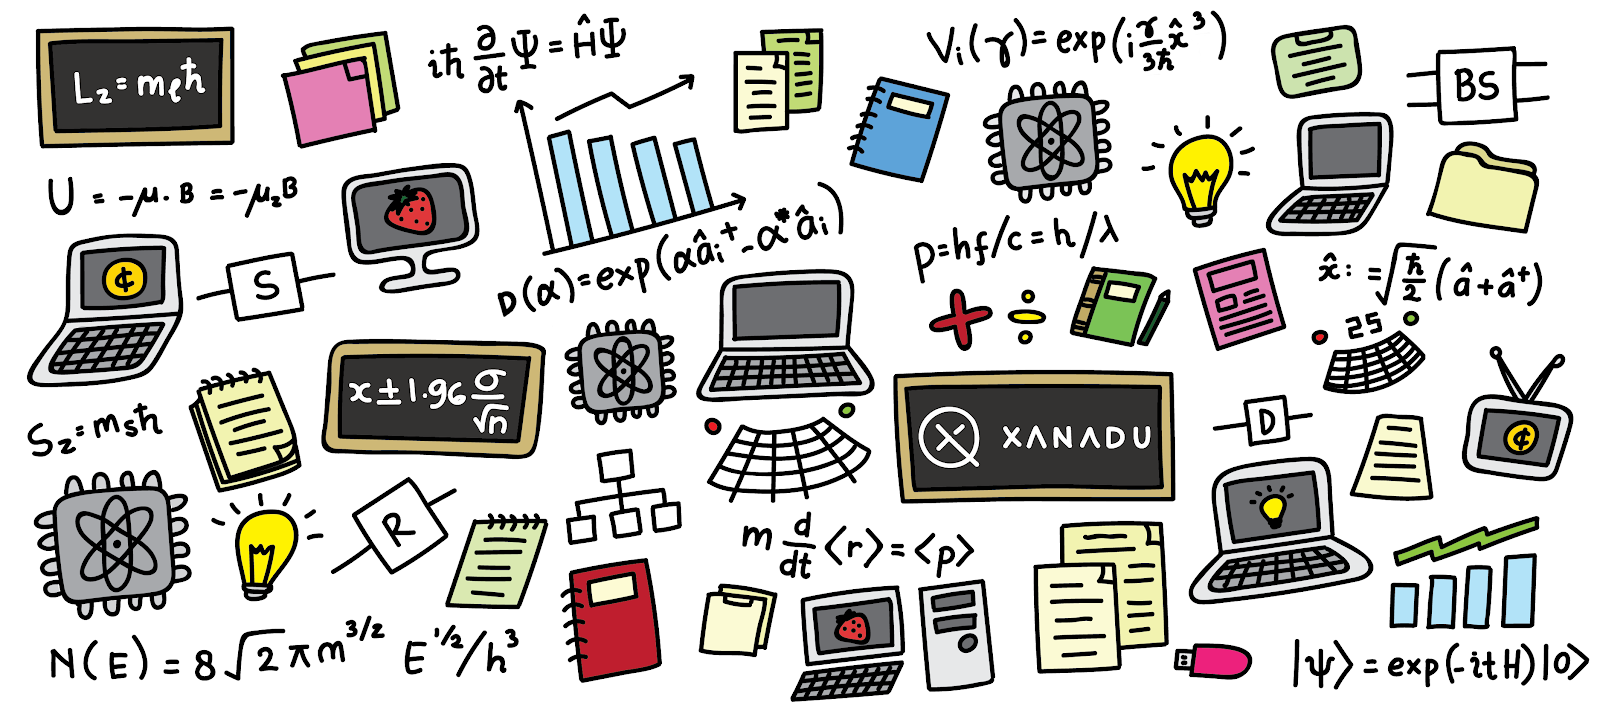 Announcing the Xanadu Quantum Software Competition